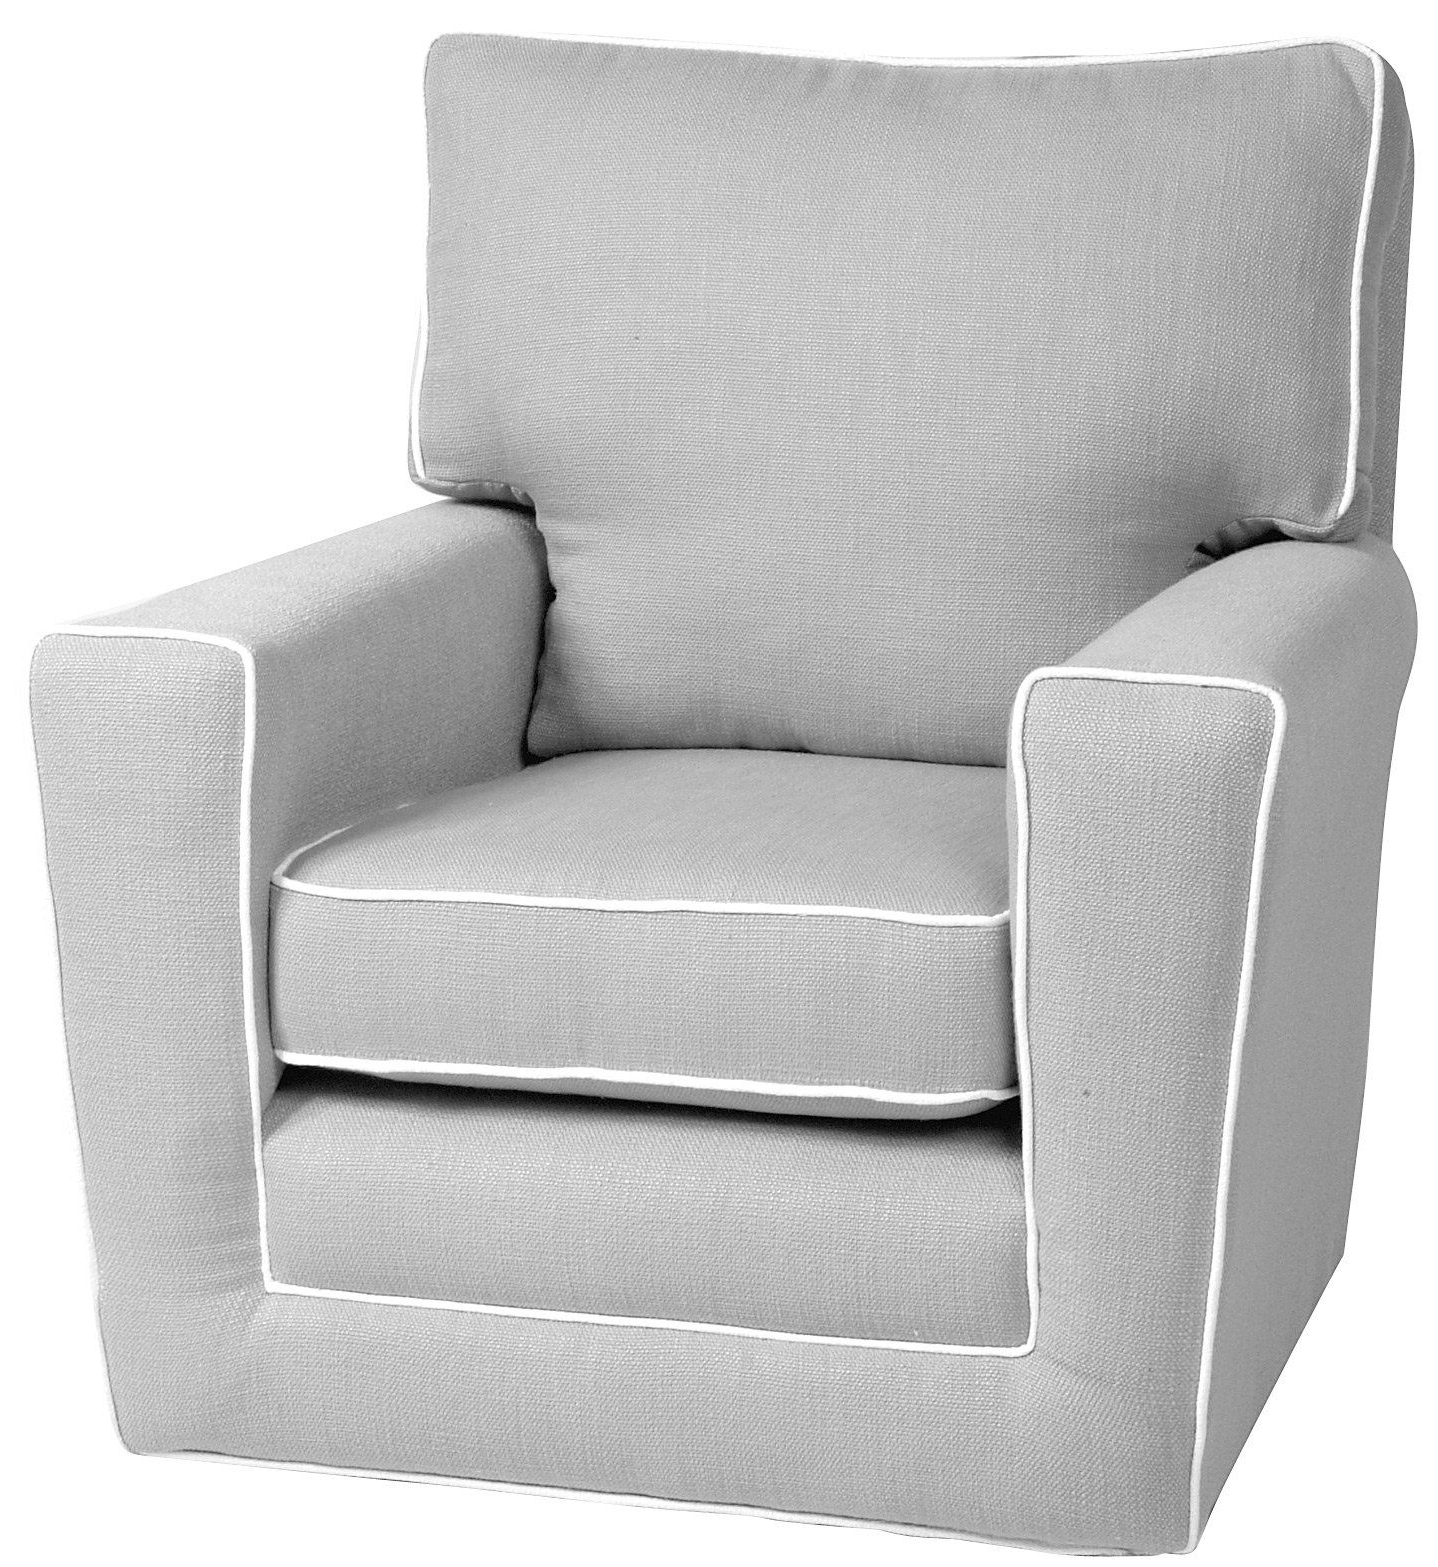 Katrina Grey Swivel Glider Chairs Throughout 2019 I Will Own A Little Castle Recliner For My Nursery No Way I'd Buy (View 7 of 20)